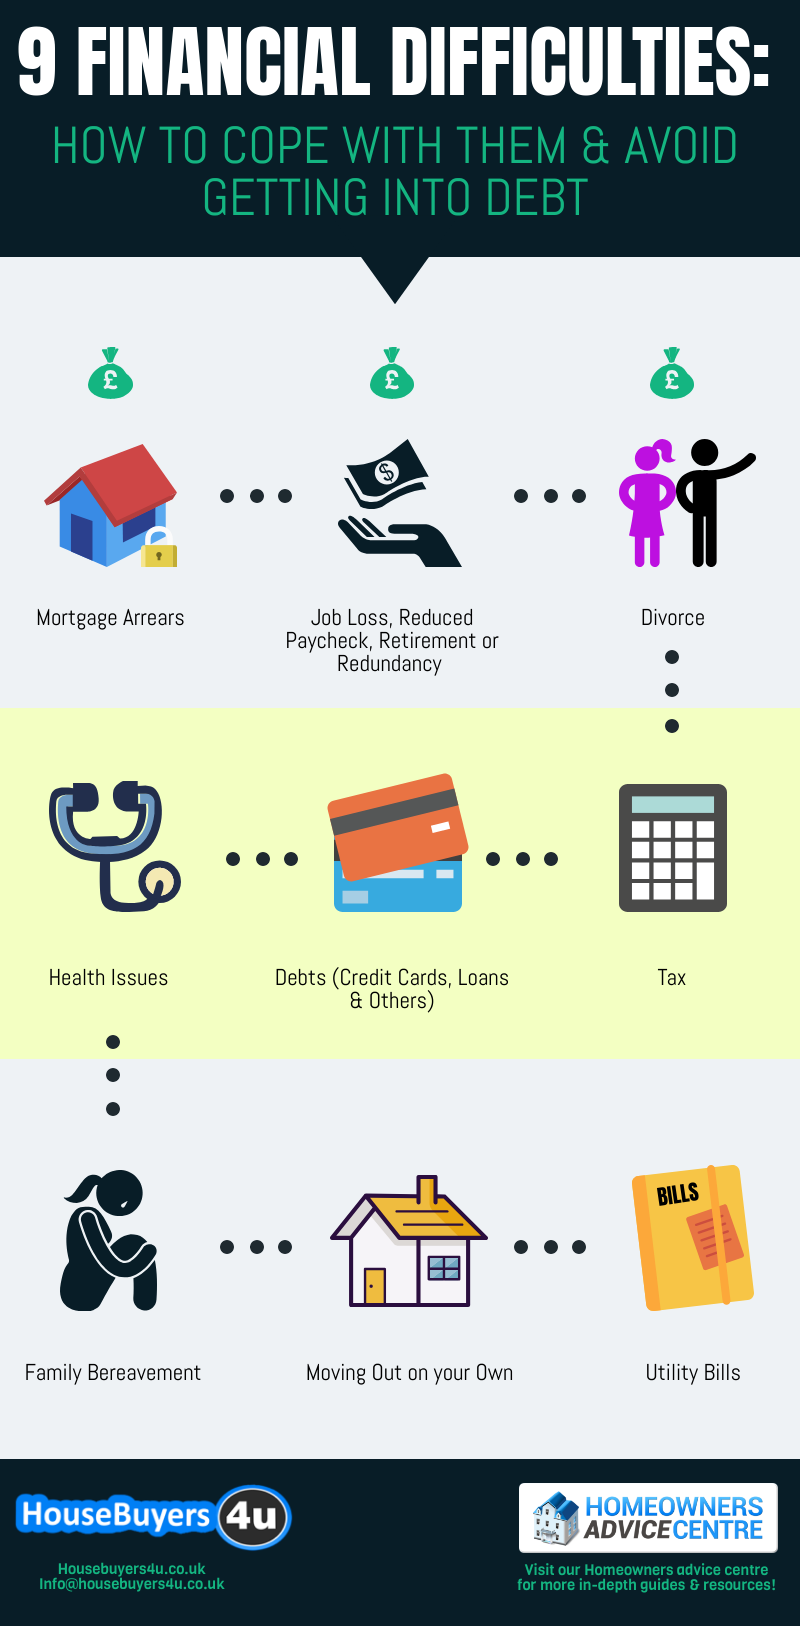 9 Financial Difficulties - How to cope and avoid debt infographic image